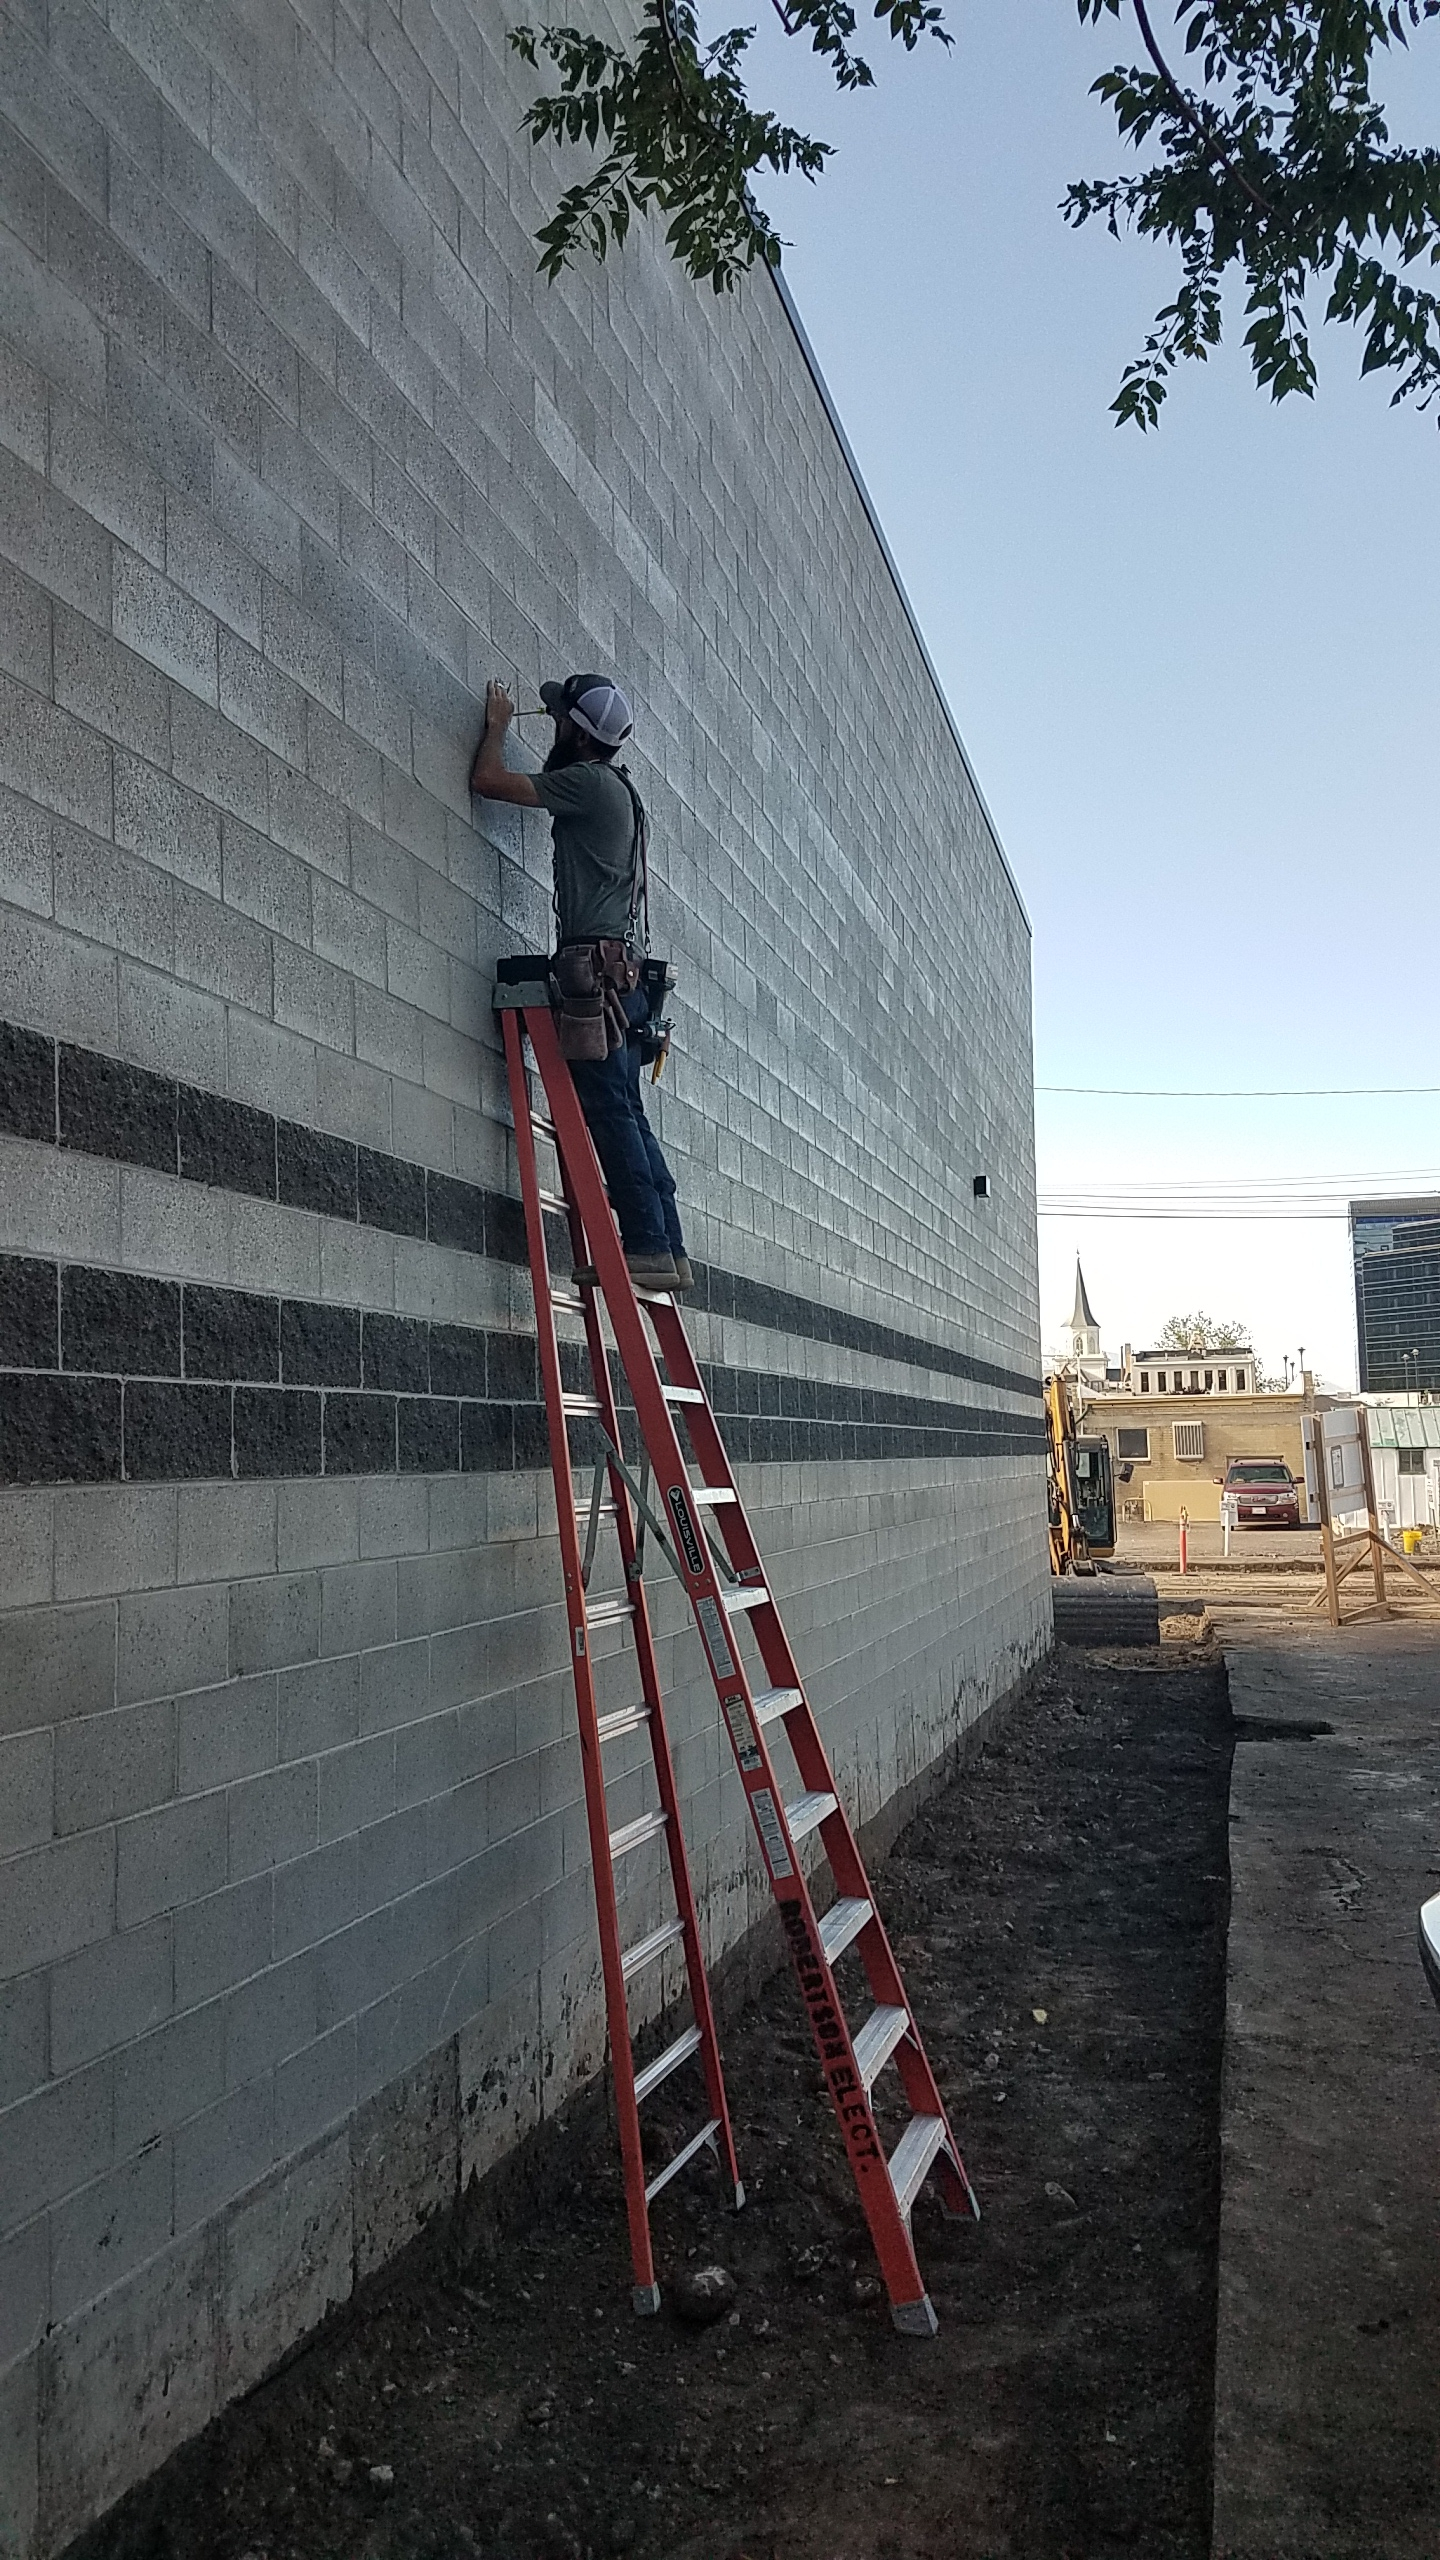 Installing exterior lights along the west wall of the building.